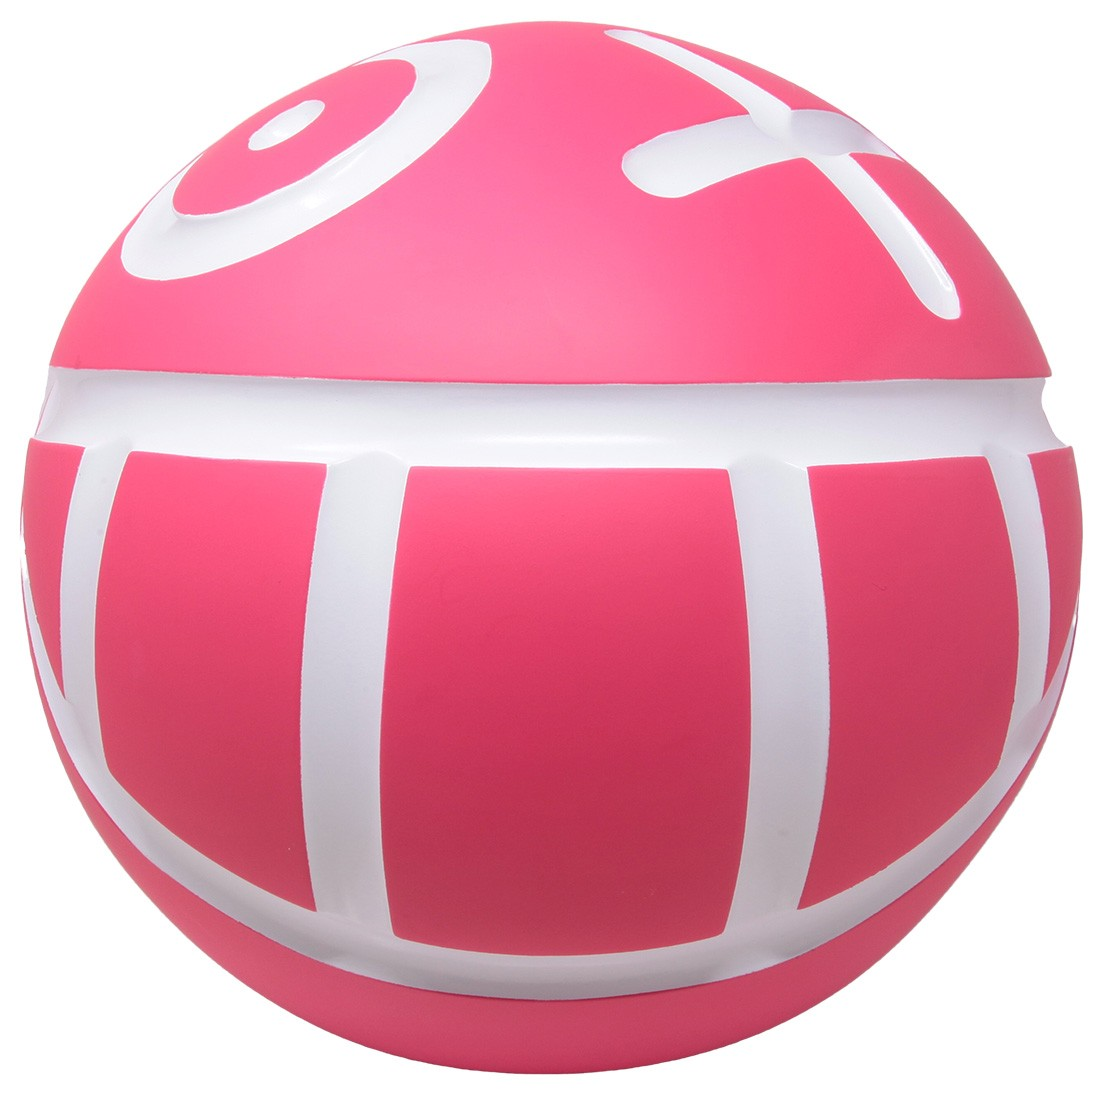 Medicom VCD Andre Saraiva Mr. A Ball Pink W Size Figure (pink / white)